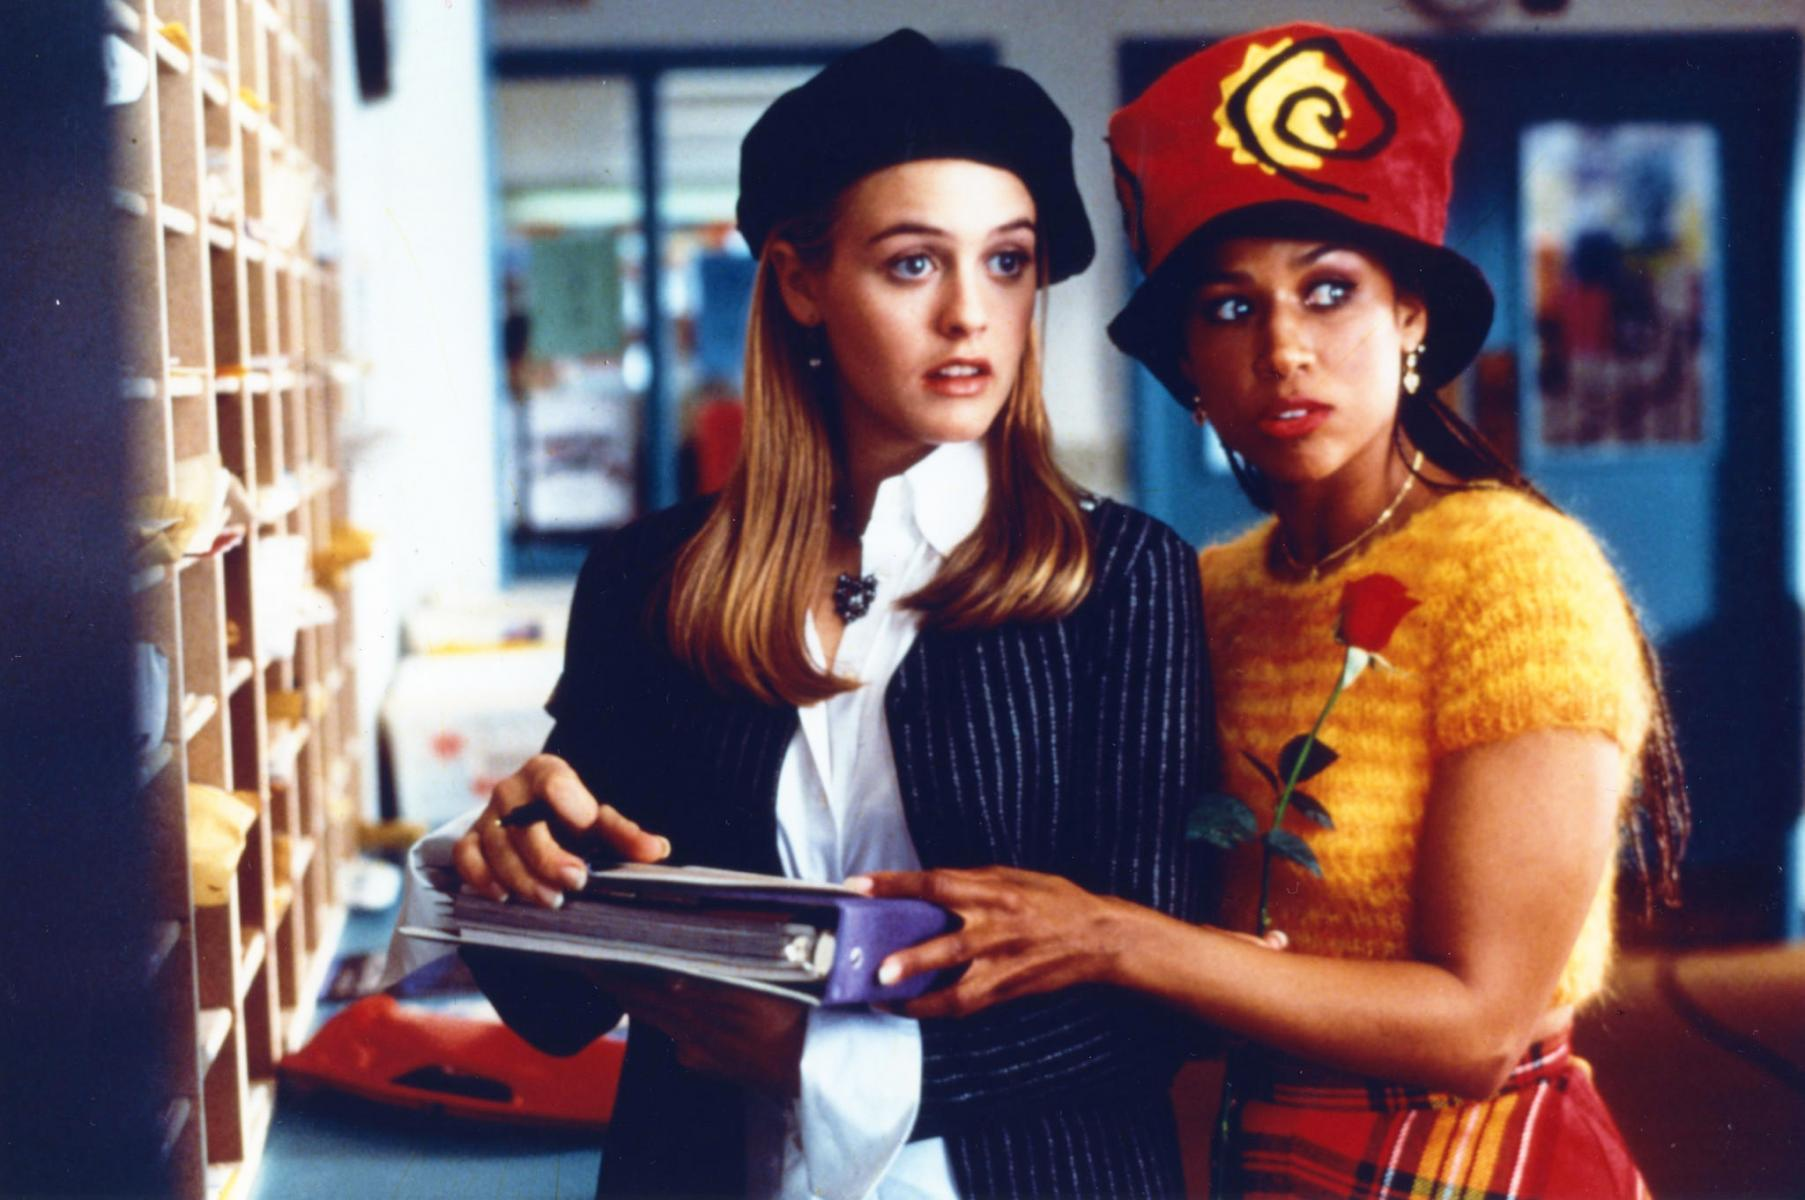 Image Gallery For Clueless Filmaffinity